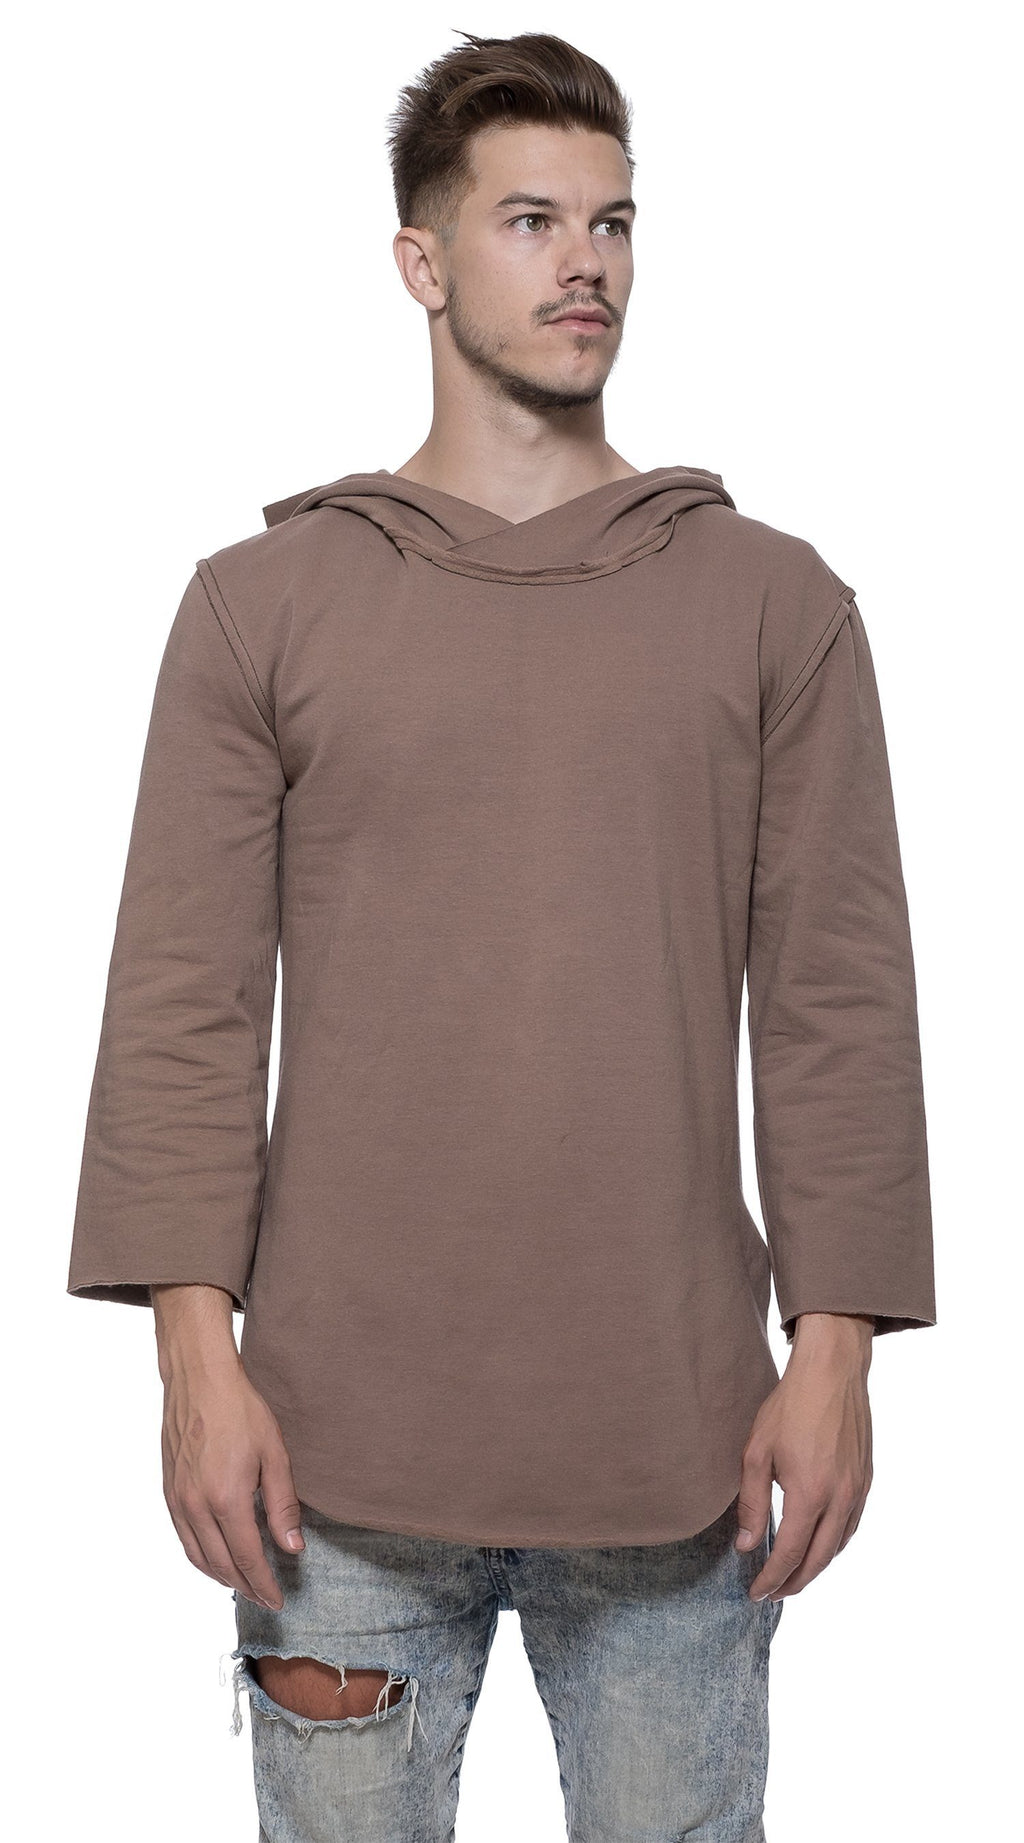 TheG man cotton handmade 3/4 Long Sleeve Hoody // khaki